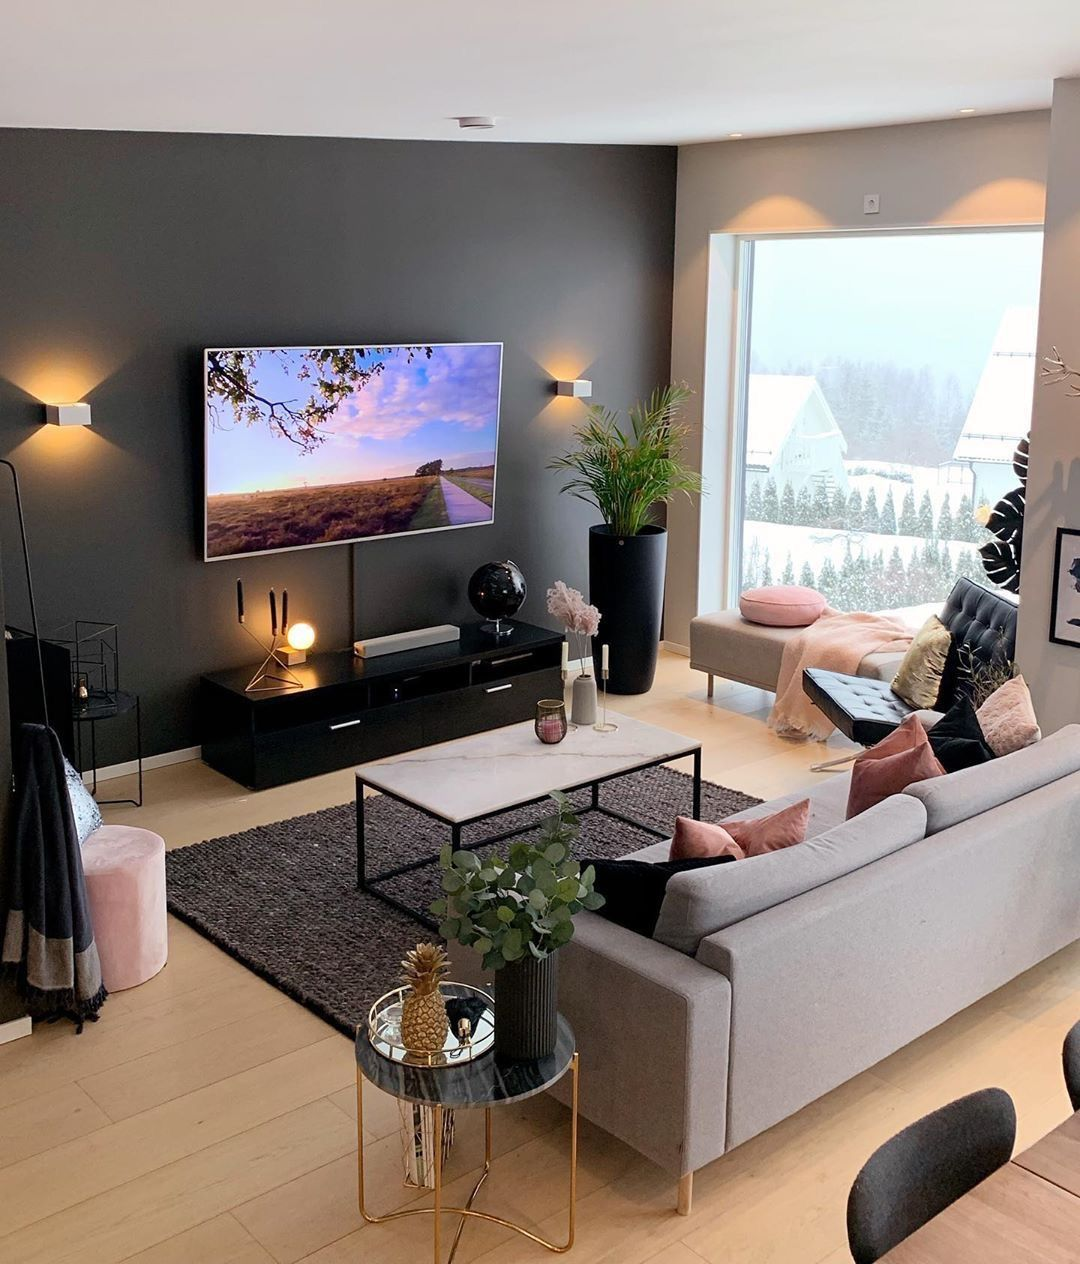 Pin By Cynthia Lew On Home In 2020 Modern Living Room